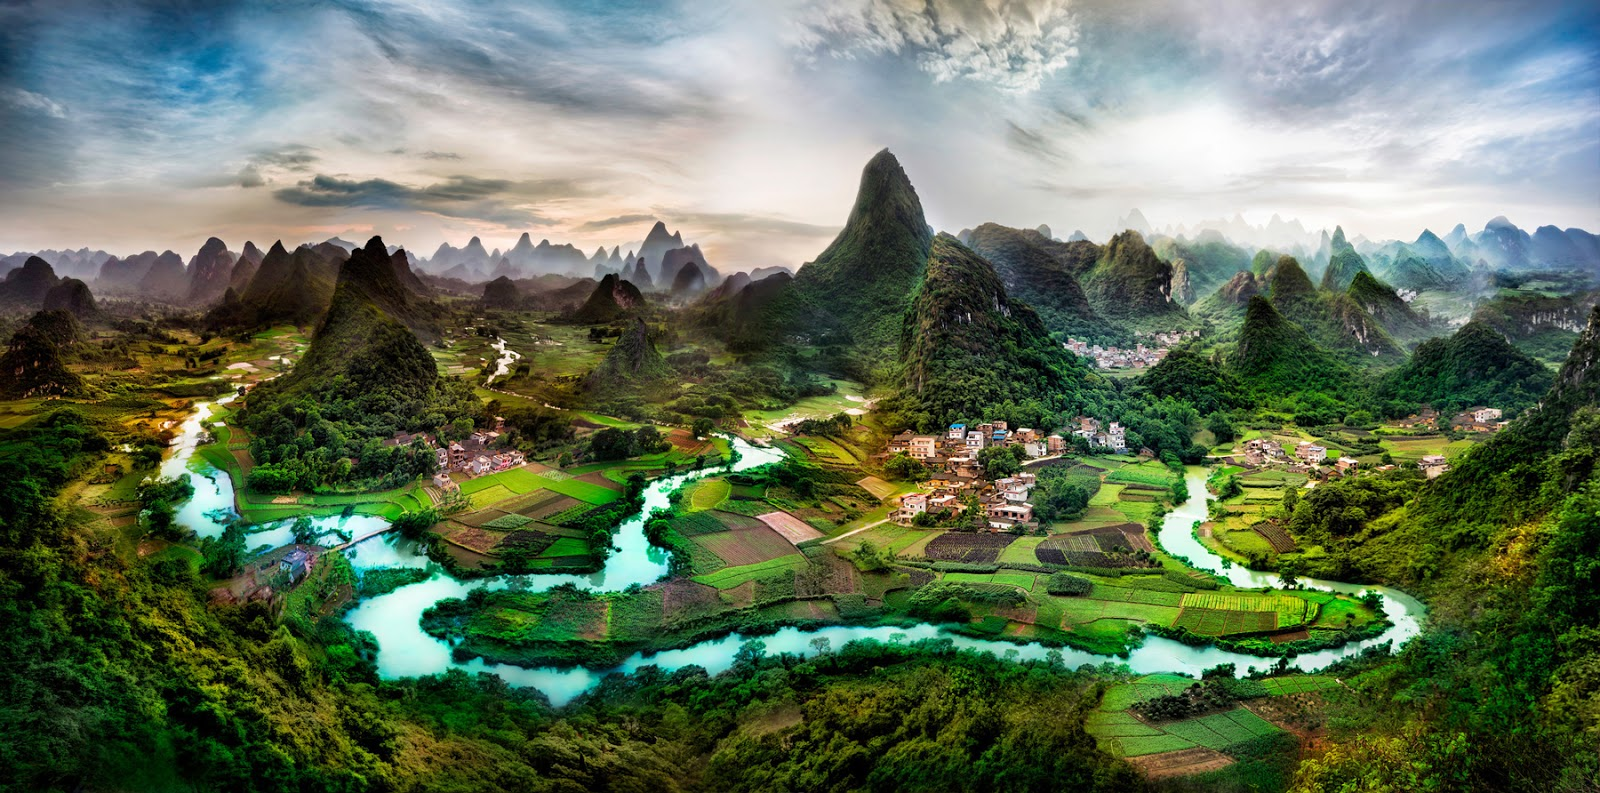 Karst topography deep in the Guangxi Province of China. Photo by Trey Ratcliff